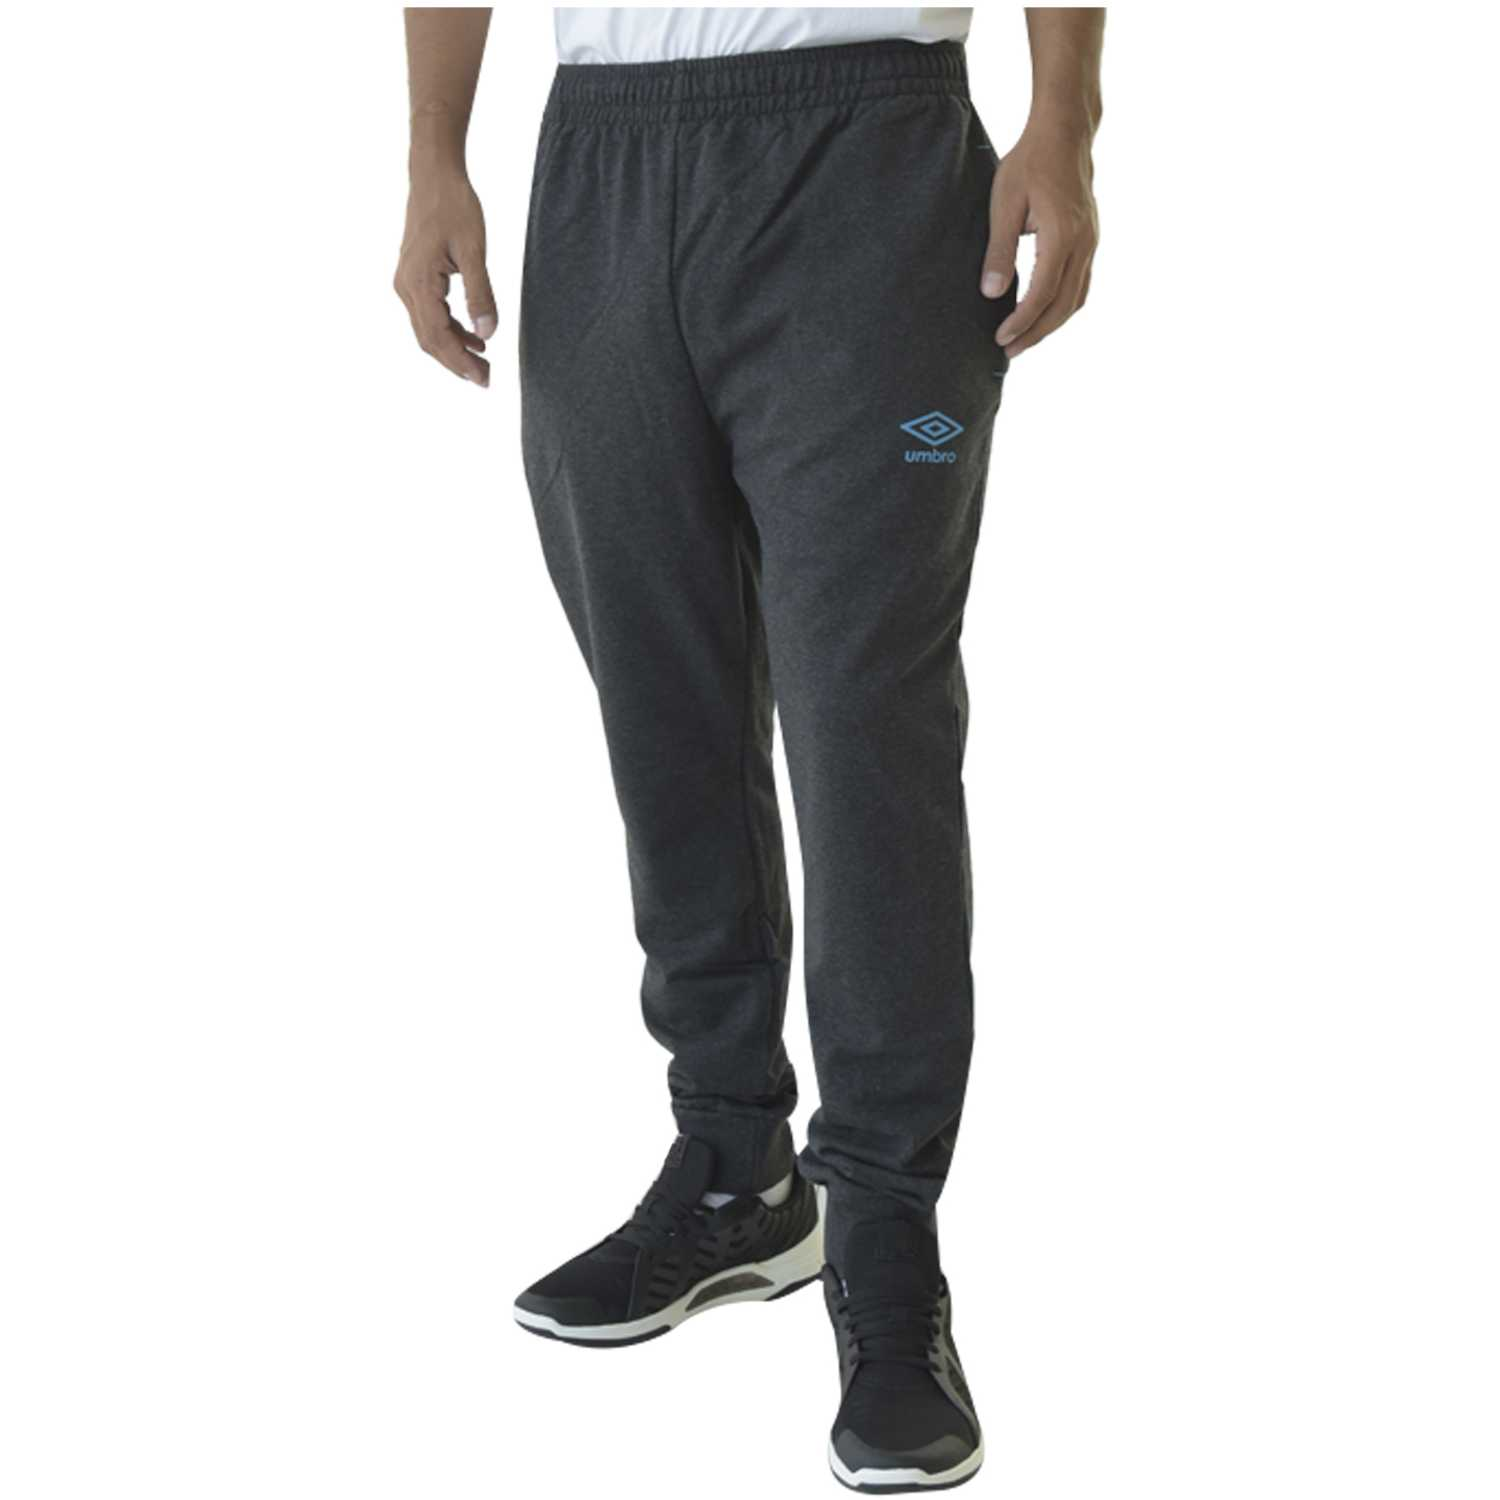 Umbro core sweat pants Negro Pantalones Deportivos